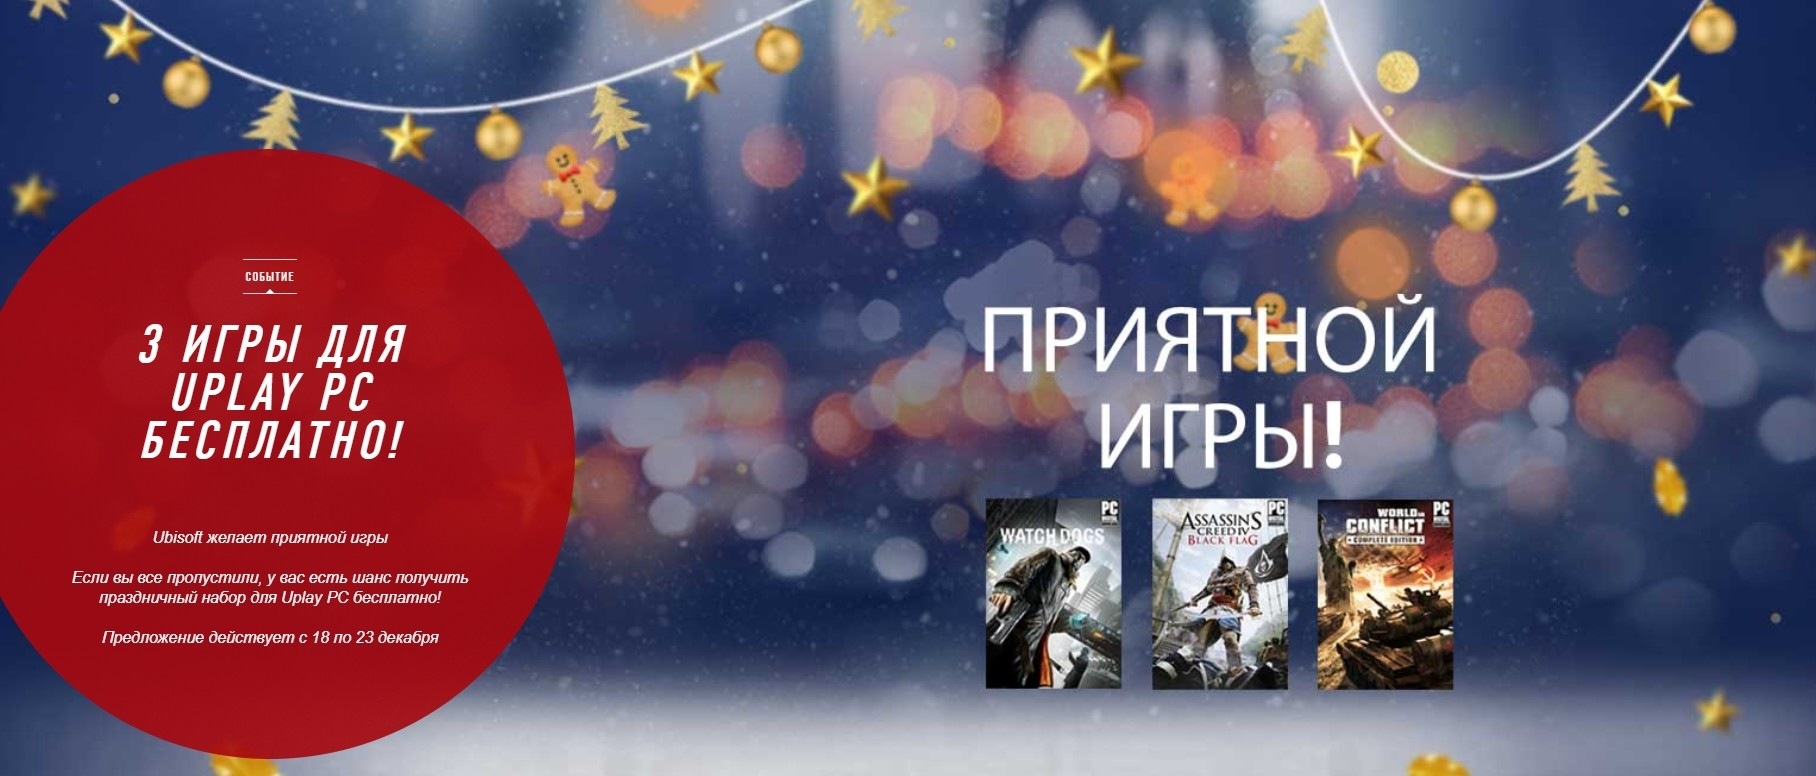 Ubisoft дарит Black Flag, Watch Dogs и World in Conflict